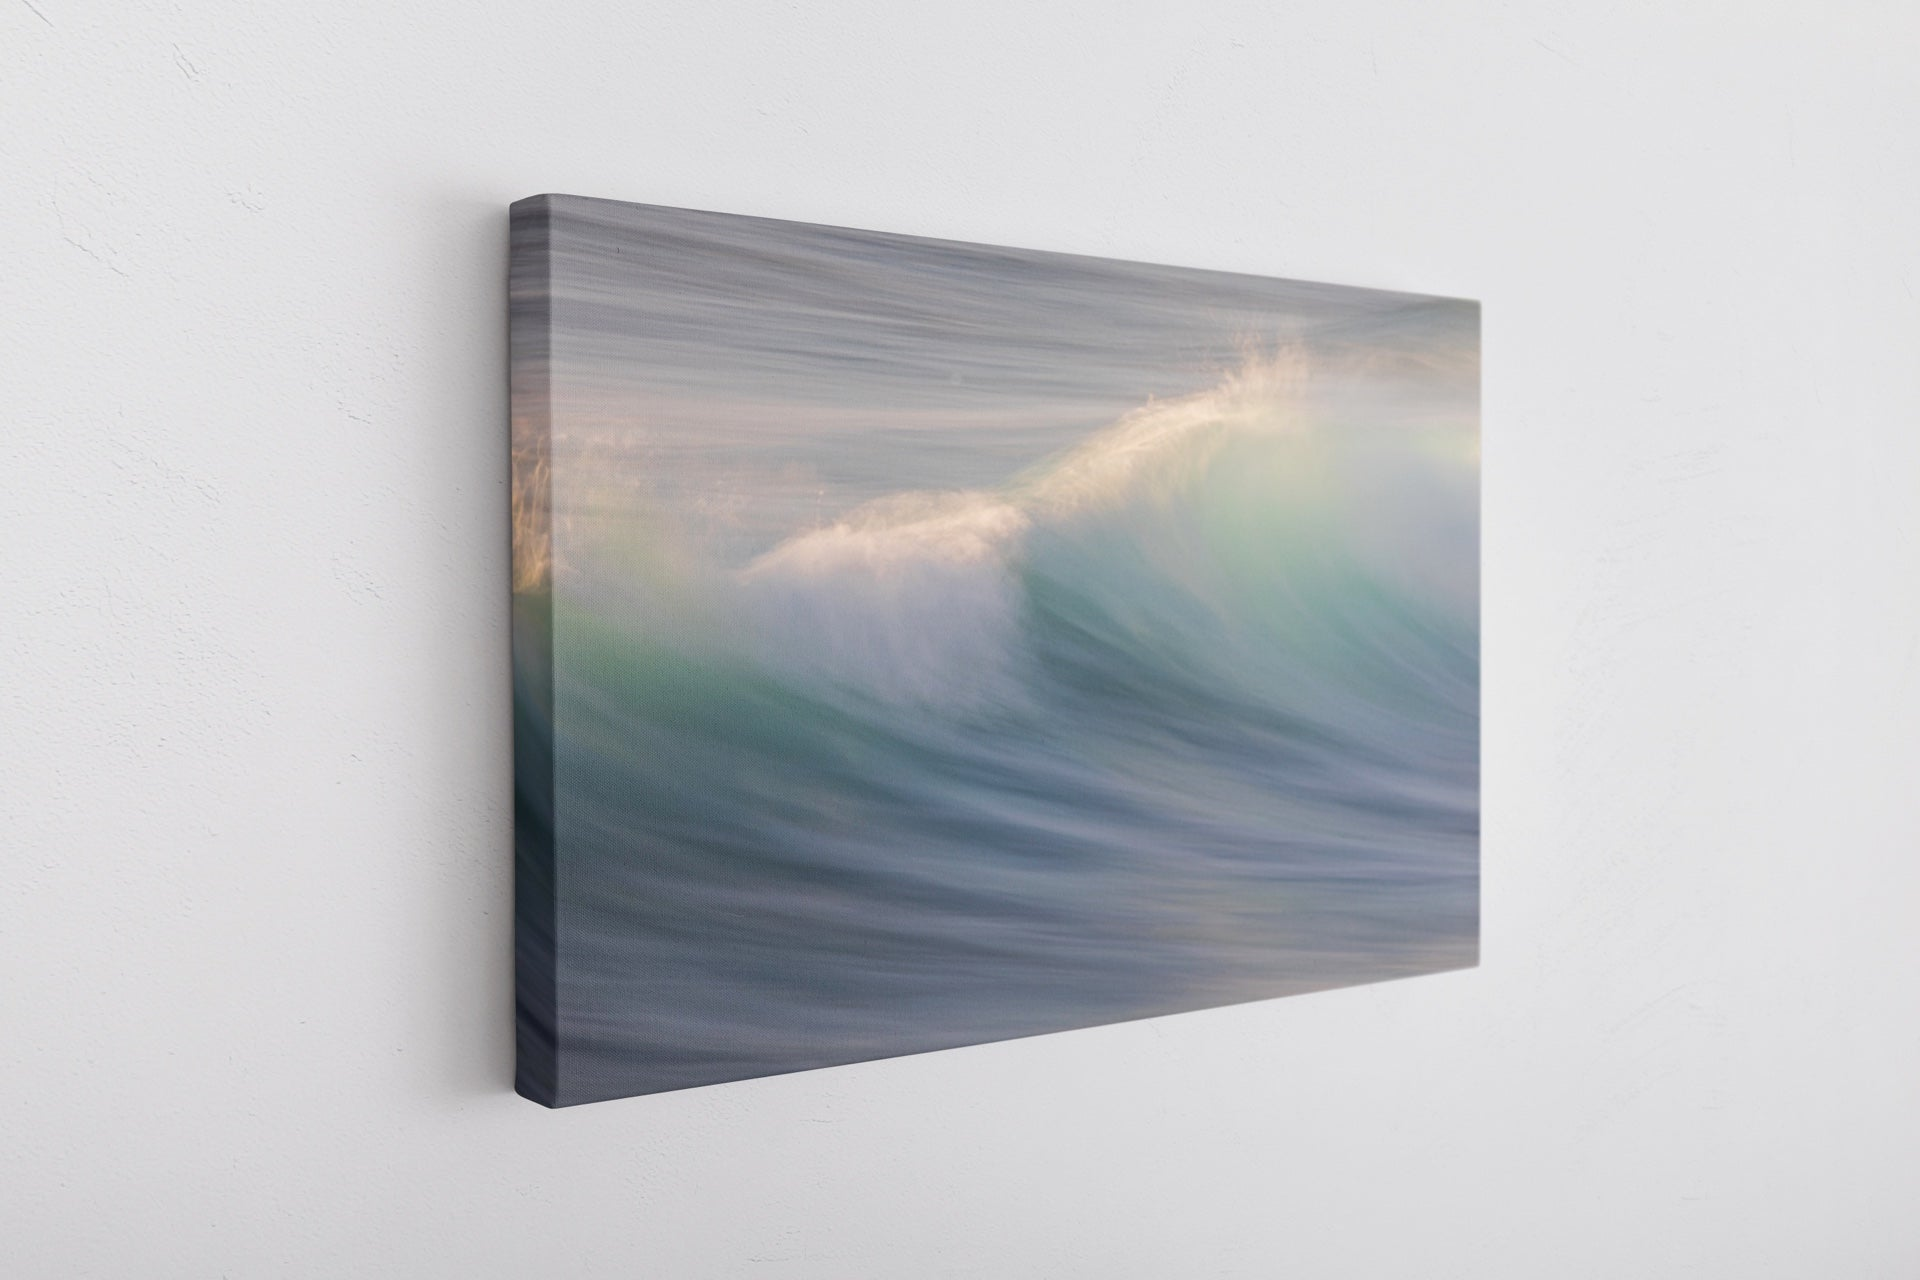 Abstract wave art on canvas